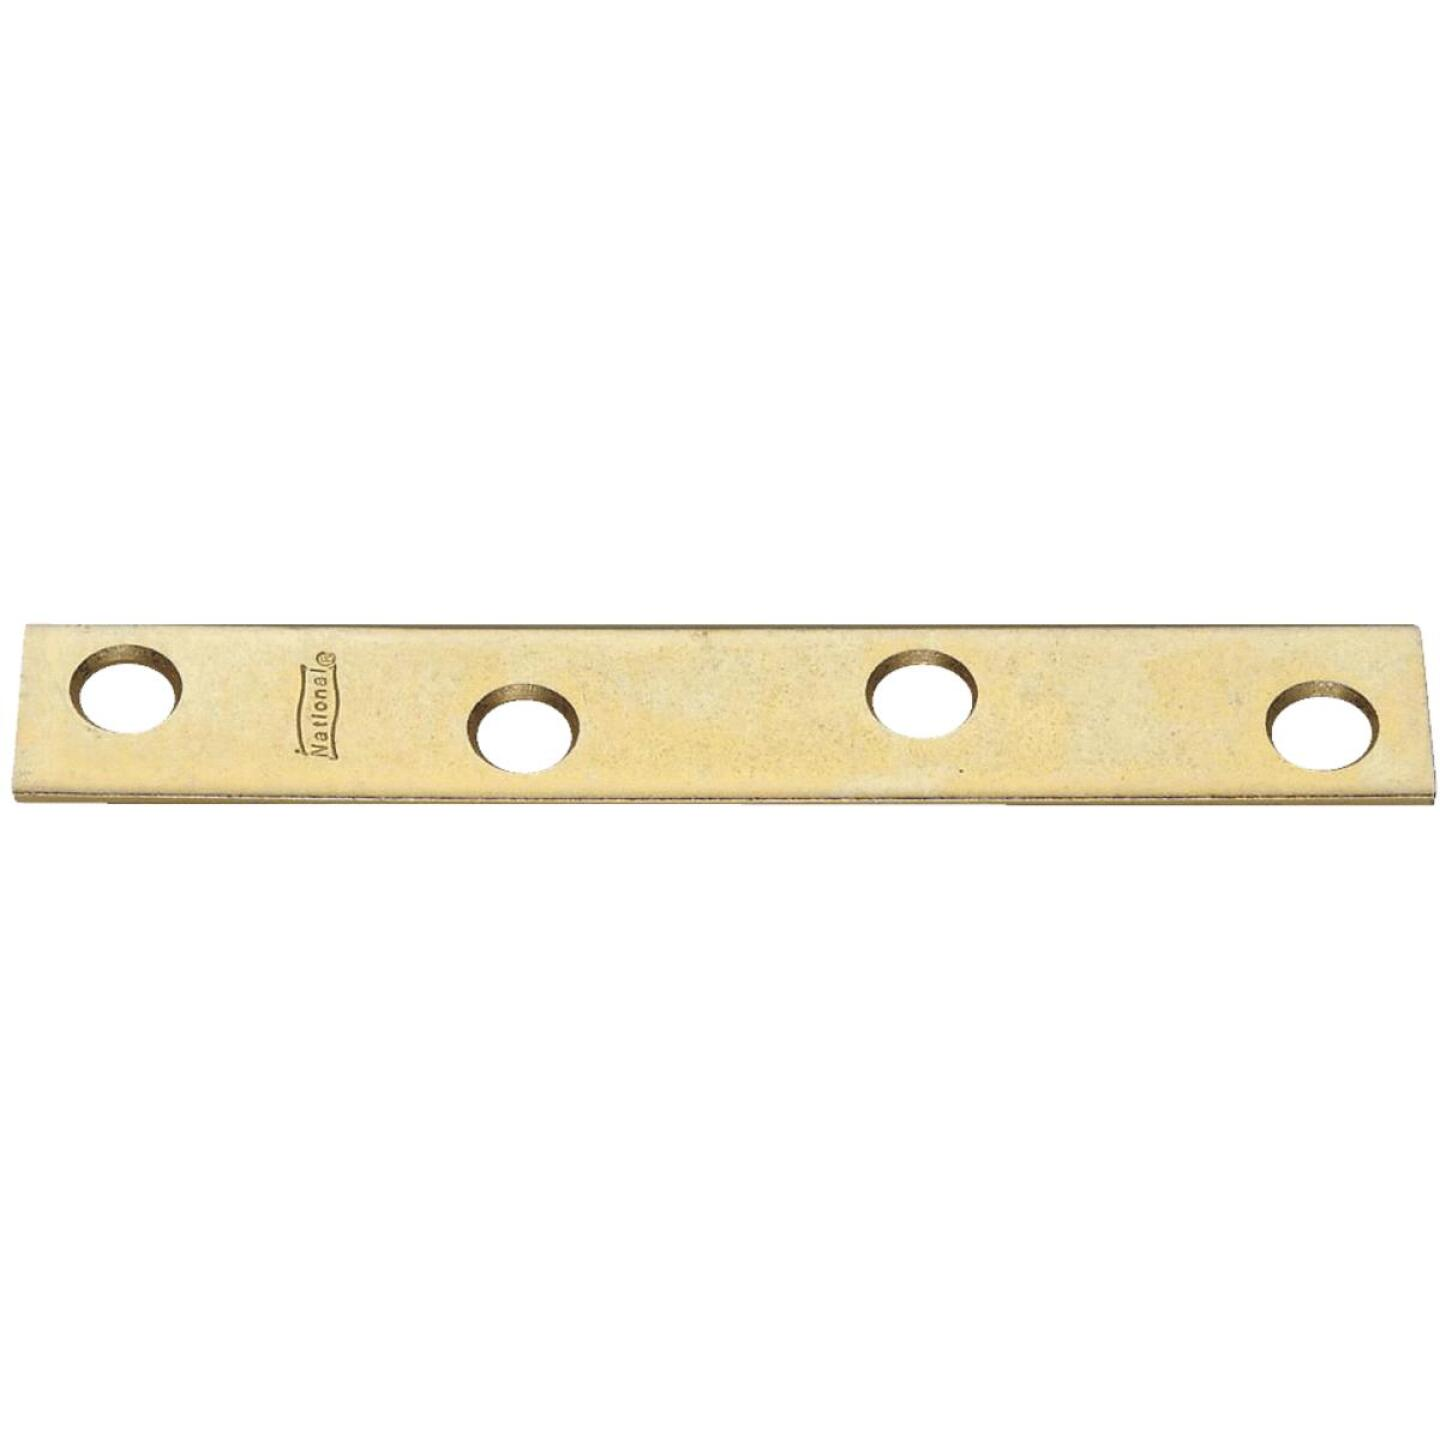 National Catalog 118 4 In. x 5/8 In. Brass Steel Mending Brace (4-Count) Image 1